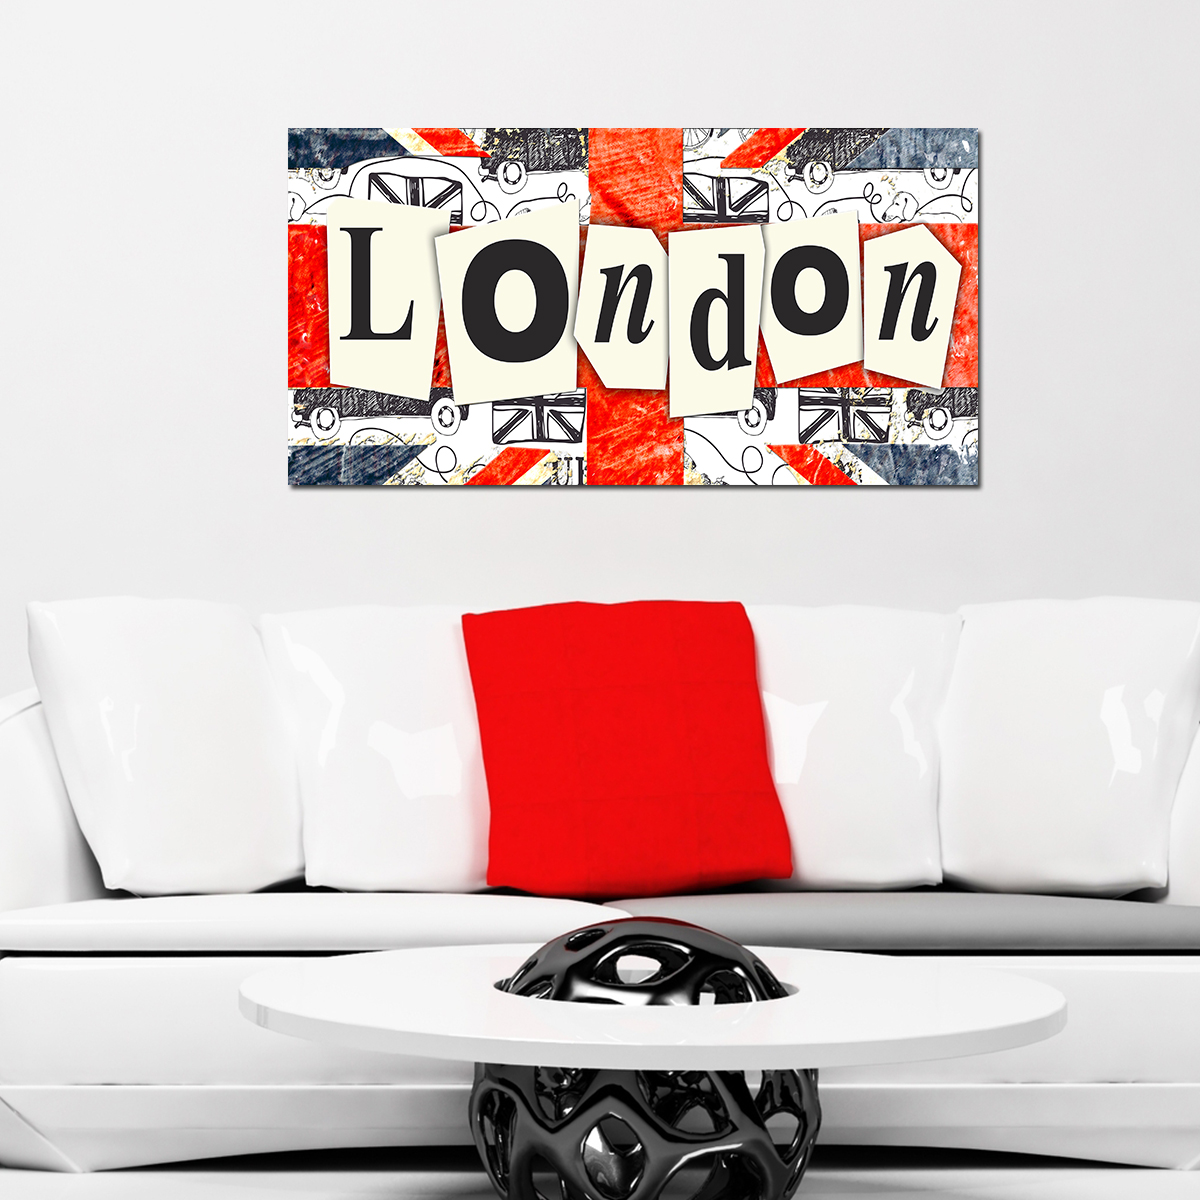 papier peint magn tique sticker papier peint magn tique london ambiance. Black Bedroom Furniture Sets. Home Design Ideas